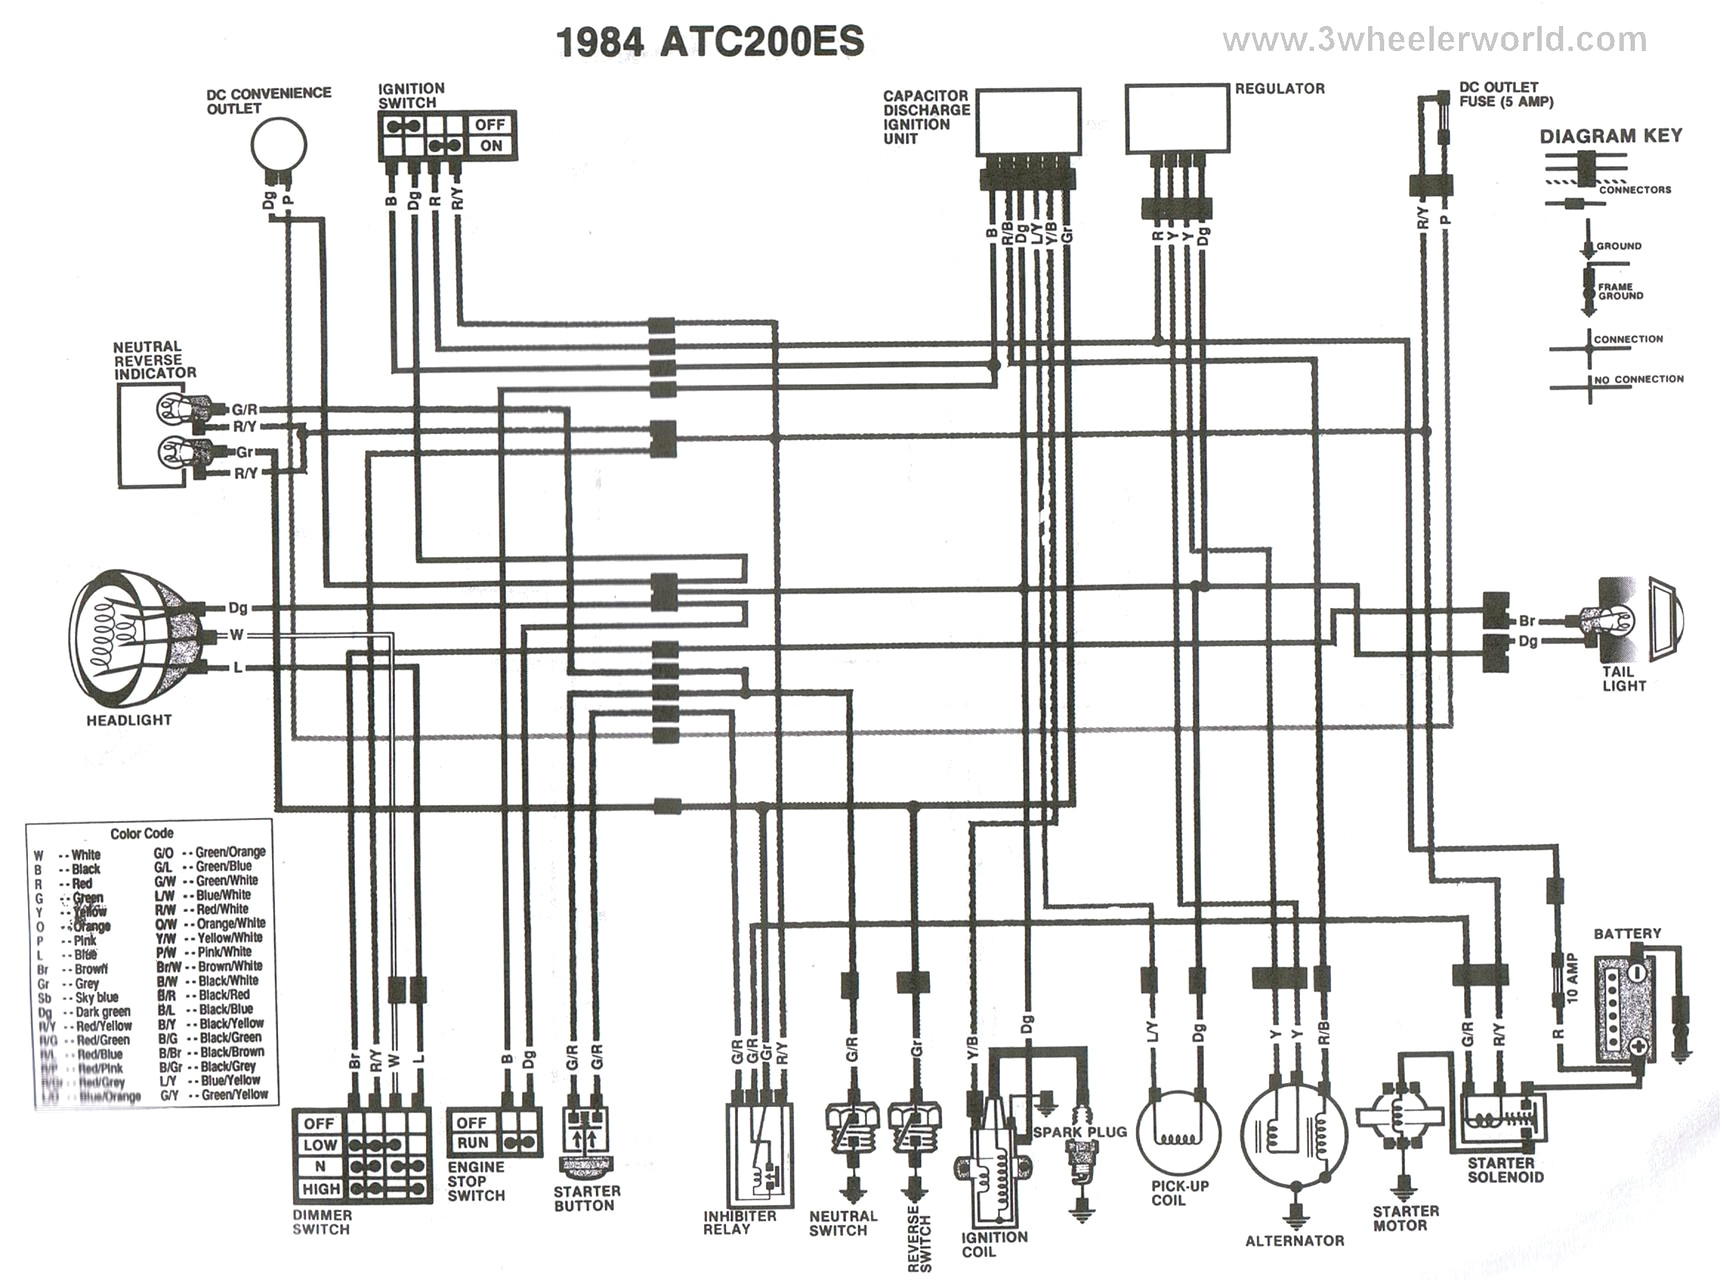 honda 300 fourtrax ignition wiring diagram Download-Honda 300 Fourtrax Ignition Wiring Diagram Honda 300ex Wiring Diagram to Her with Honda atv 11-j